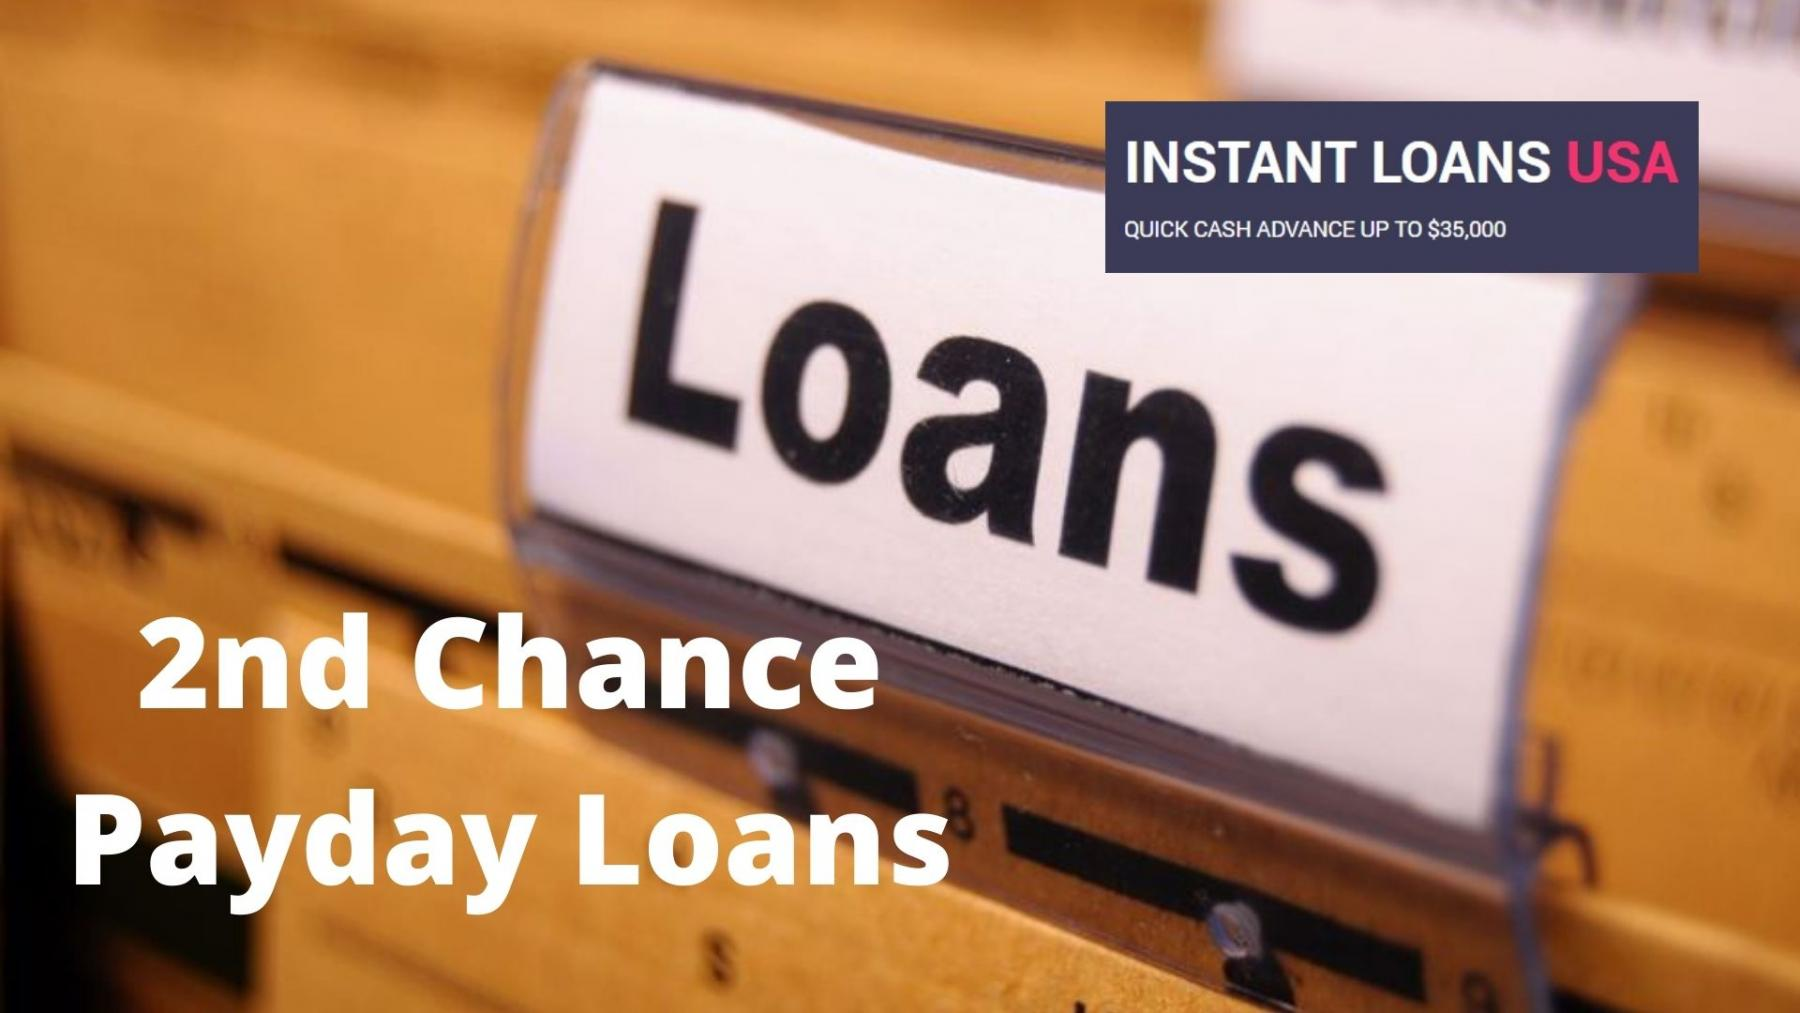 2nd Chance Payday Loans